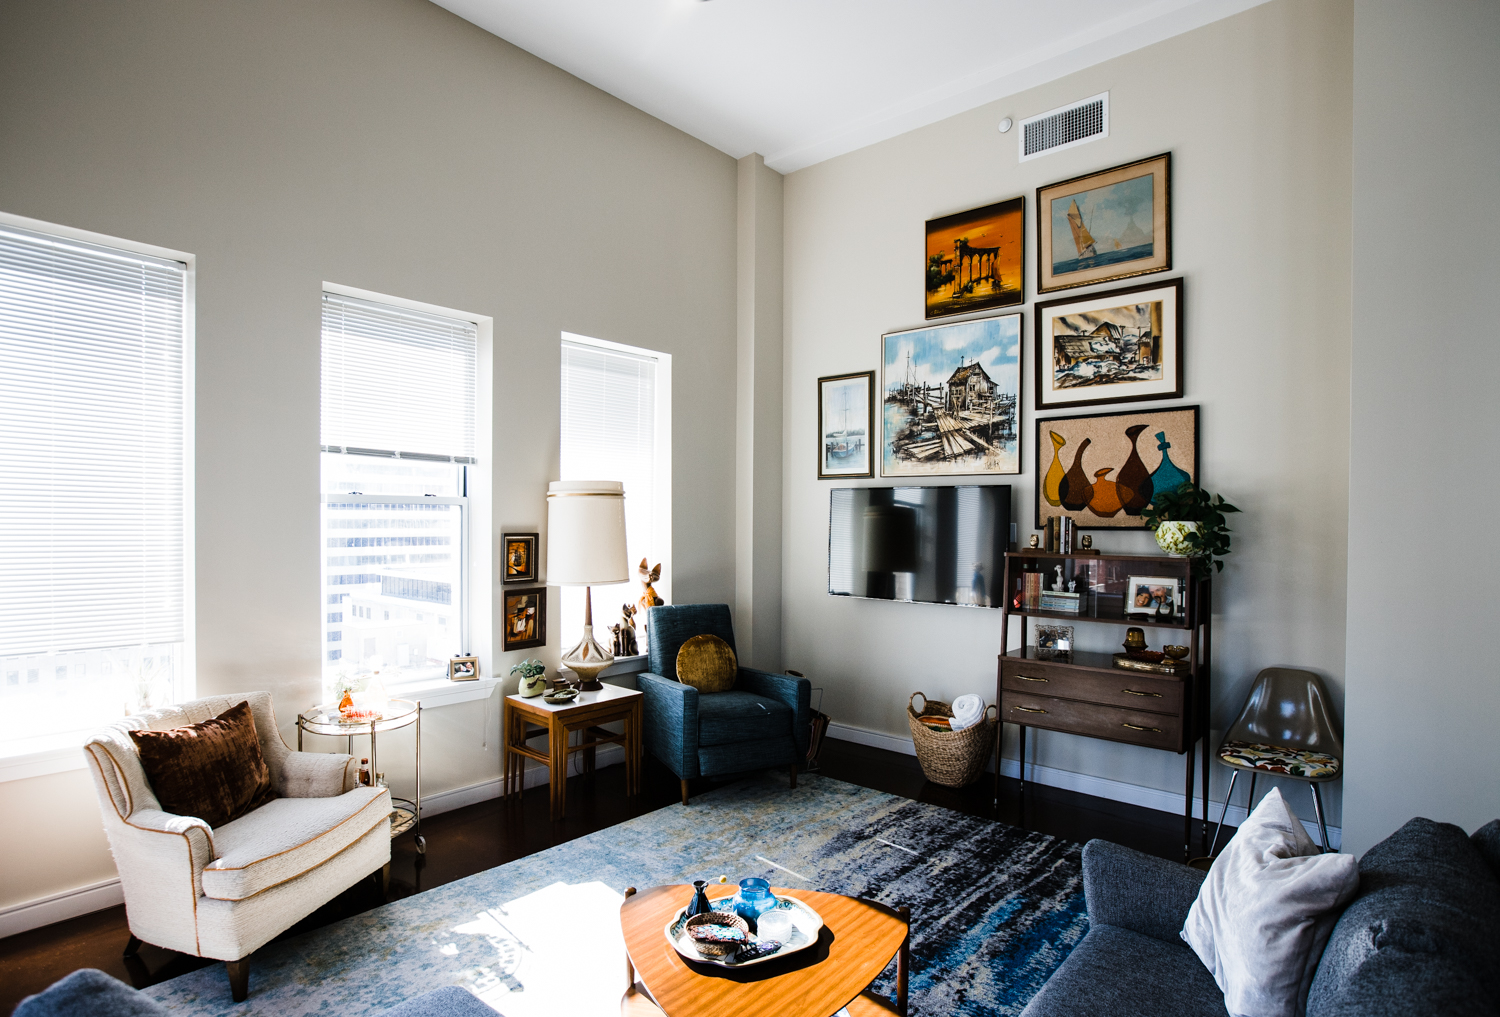 Before And After A Fabulous Retro Modern Apartment Retro Den Vintage Furniture And Homewares